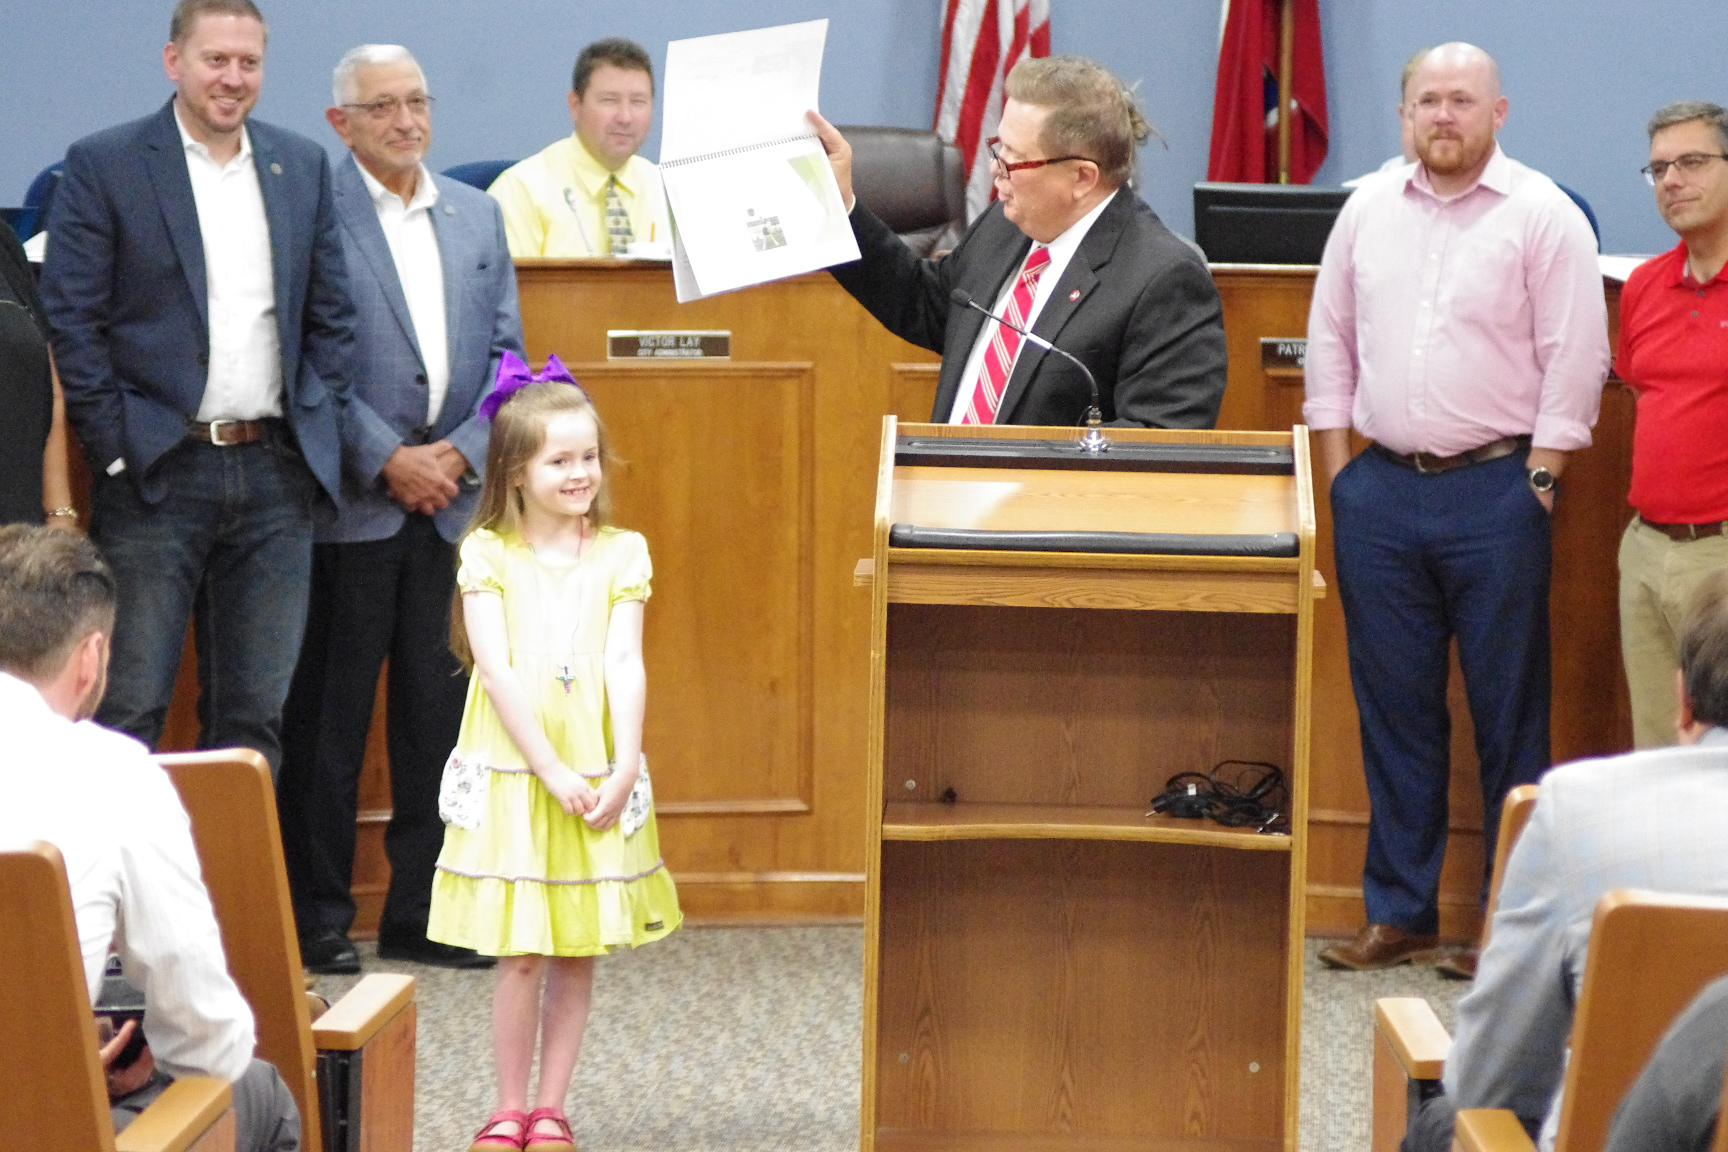 After nearly protesting, Spring Hill 7 year old meets with the mayor